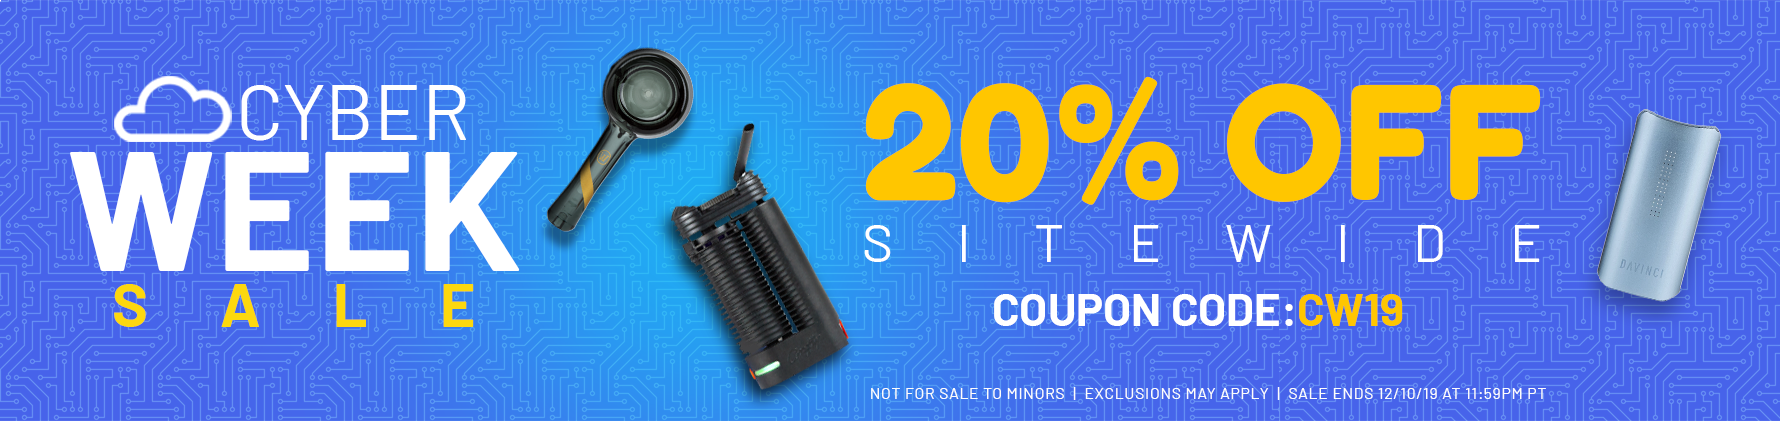 vapor.com Cyber Week sale - 20% off SITEWIDE - Coupon code: CW19